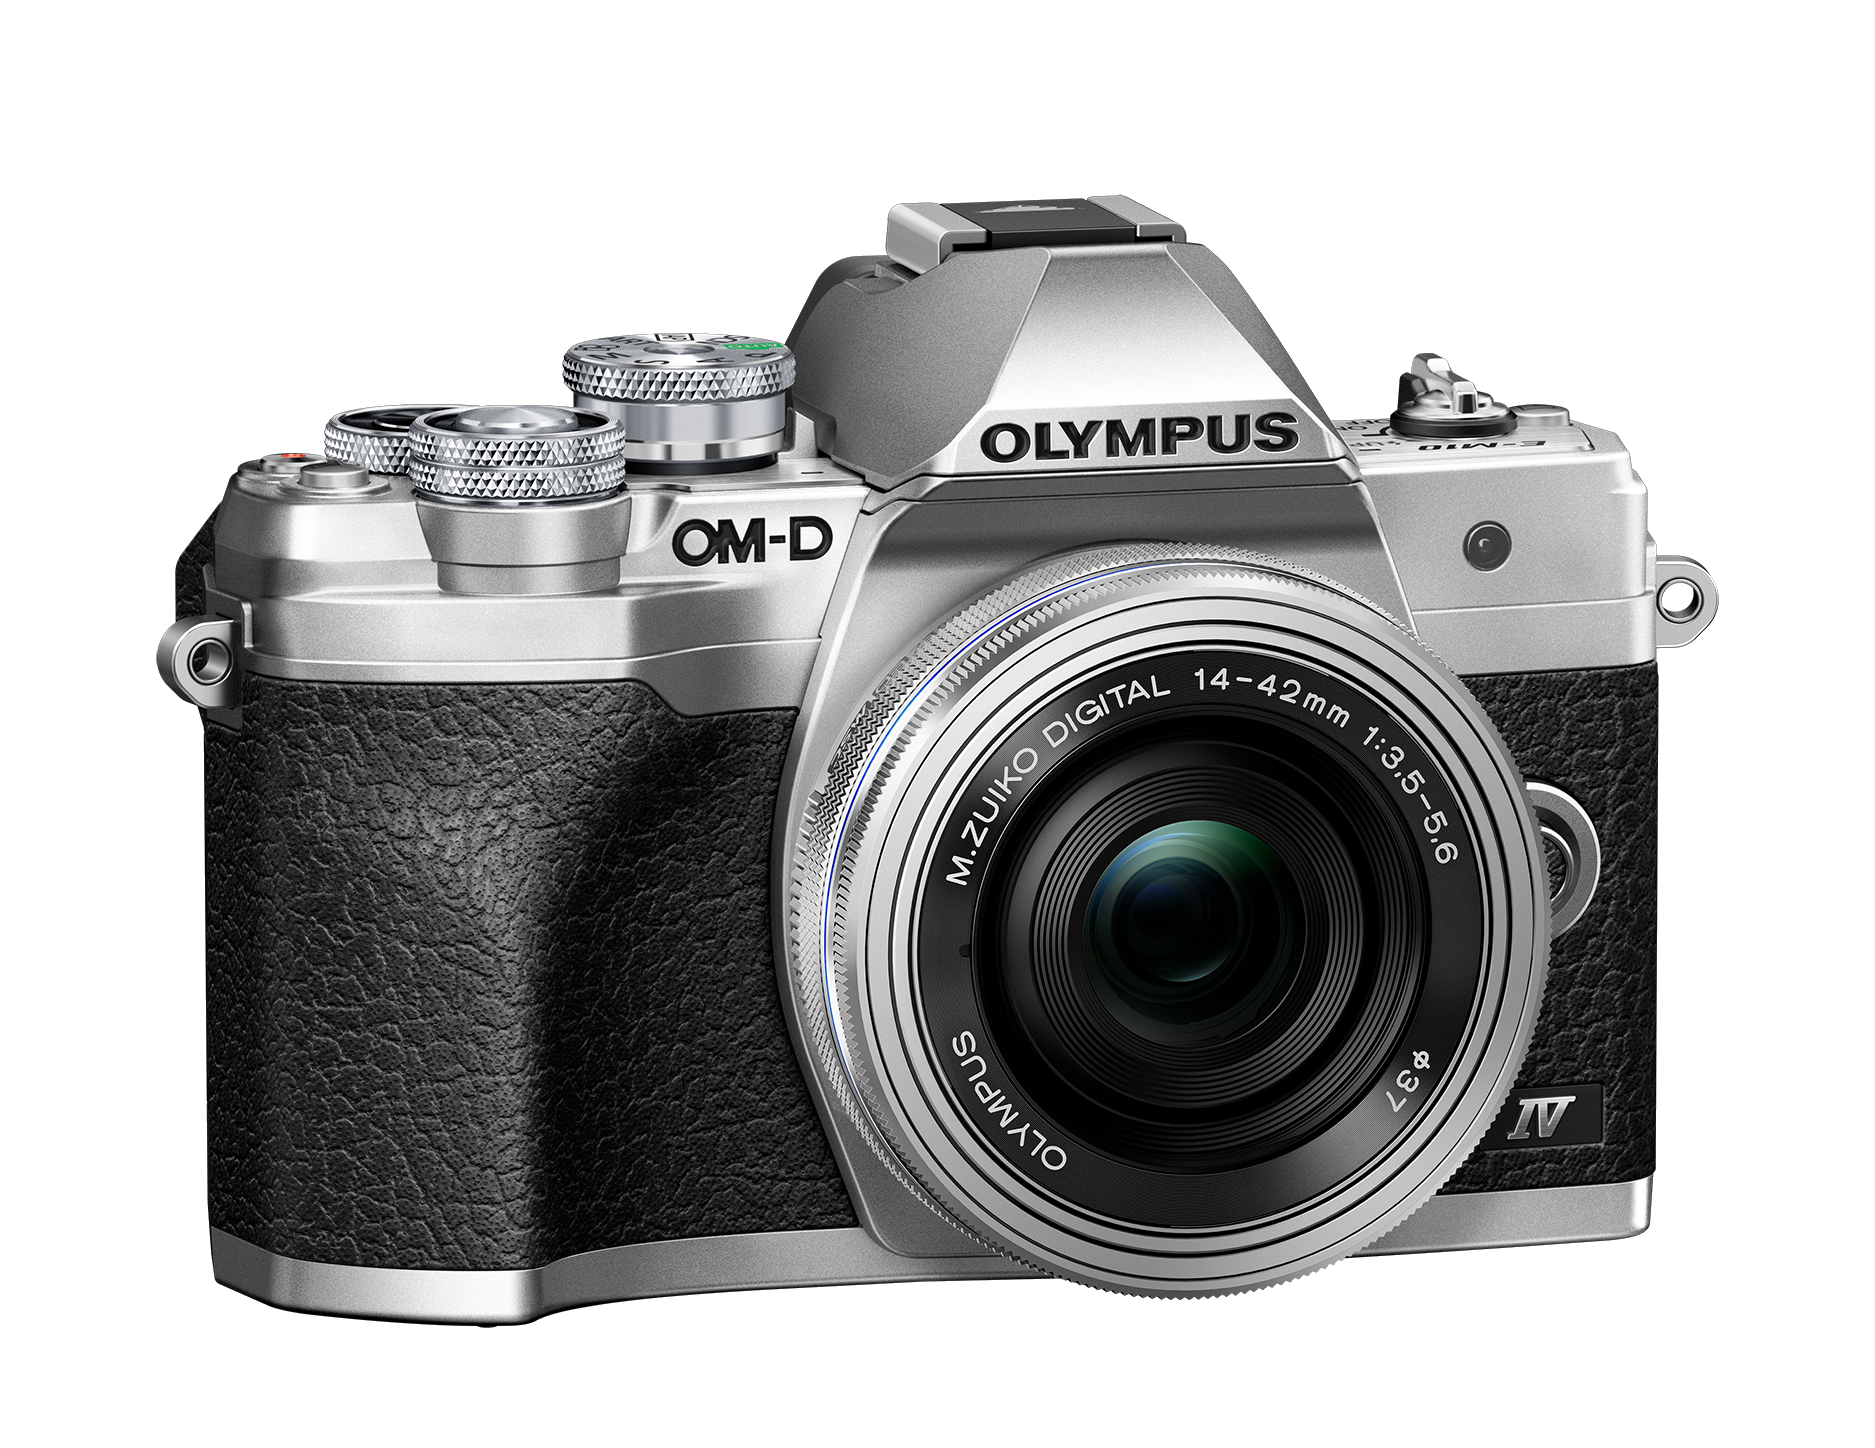 Фотоаппарат Olympus OM-D E-M10 Mark IV Pancake Zoom Kit с 14-42 EZ cеребристый (V207132SE000) фото